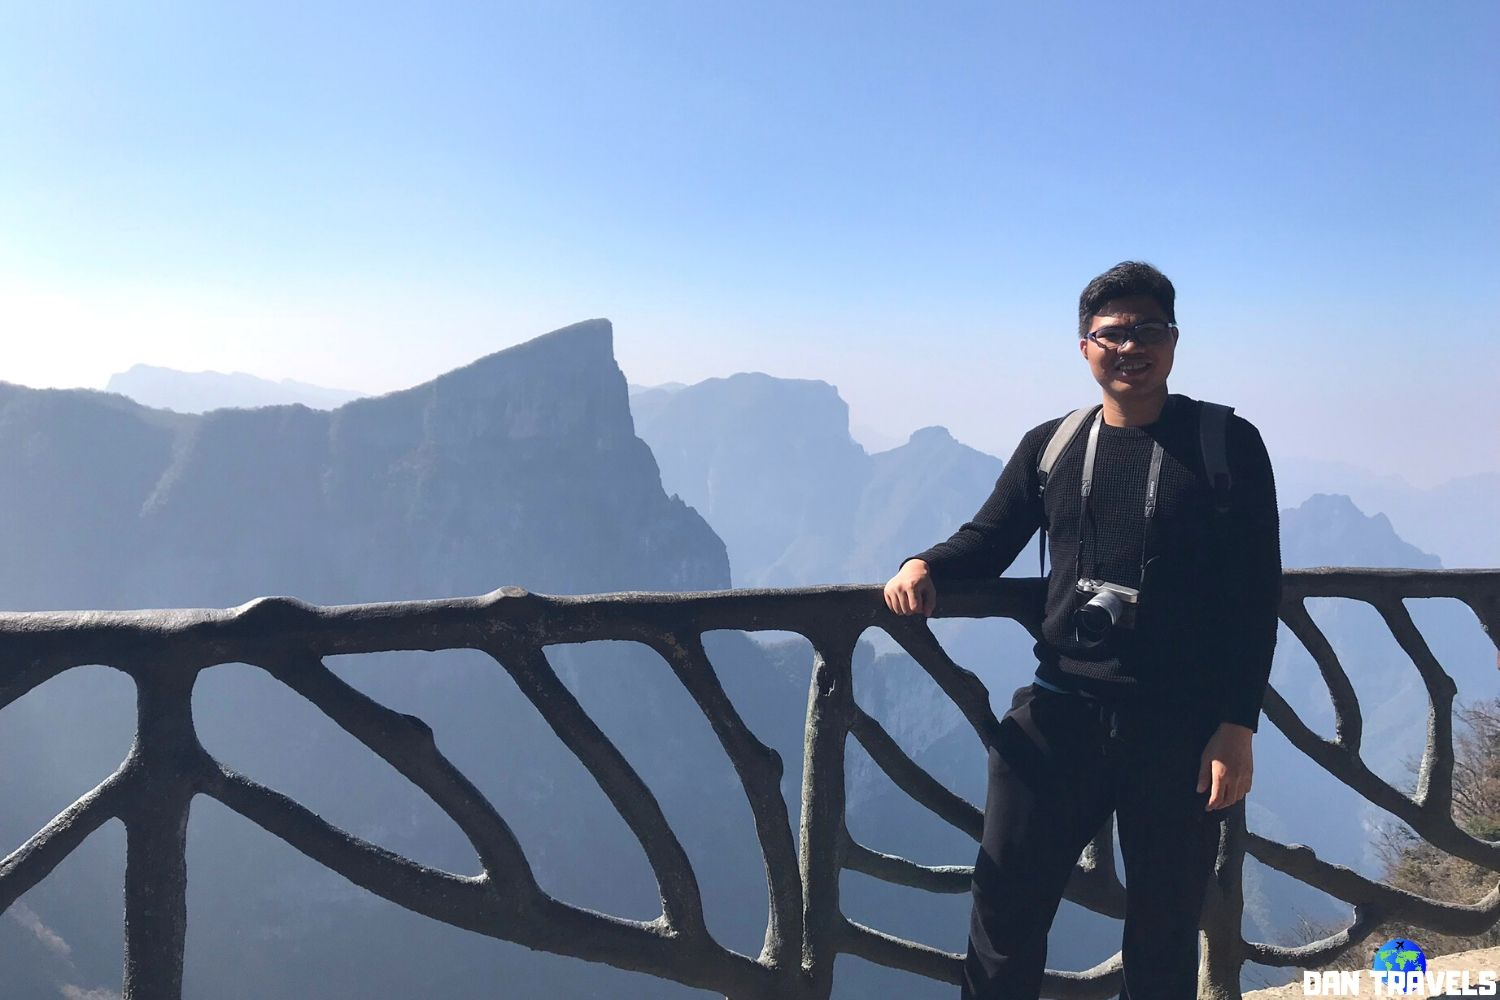 Day 4: Breathtaking view from the top of Tianmen mountain